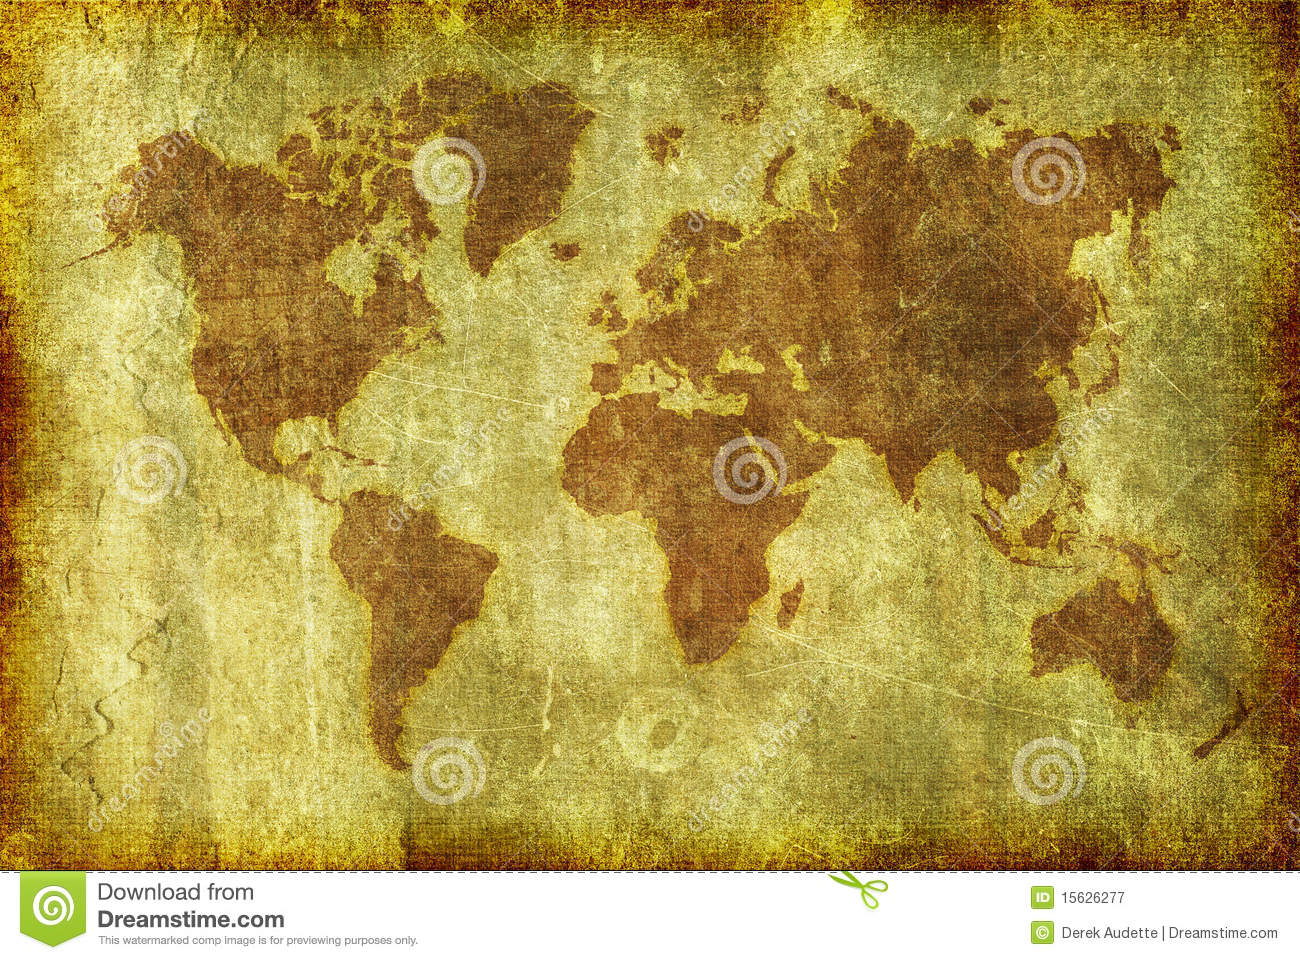 Old grunge map of the world background stock illustration old grunge map of the world background royalty free stock photo gumiabroncs Gallery